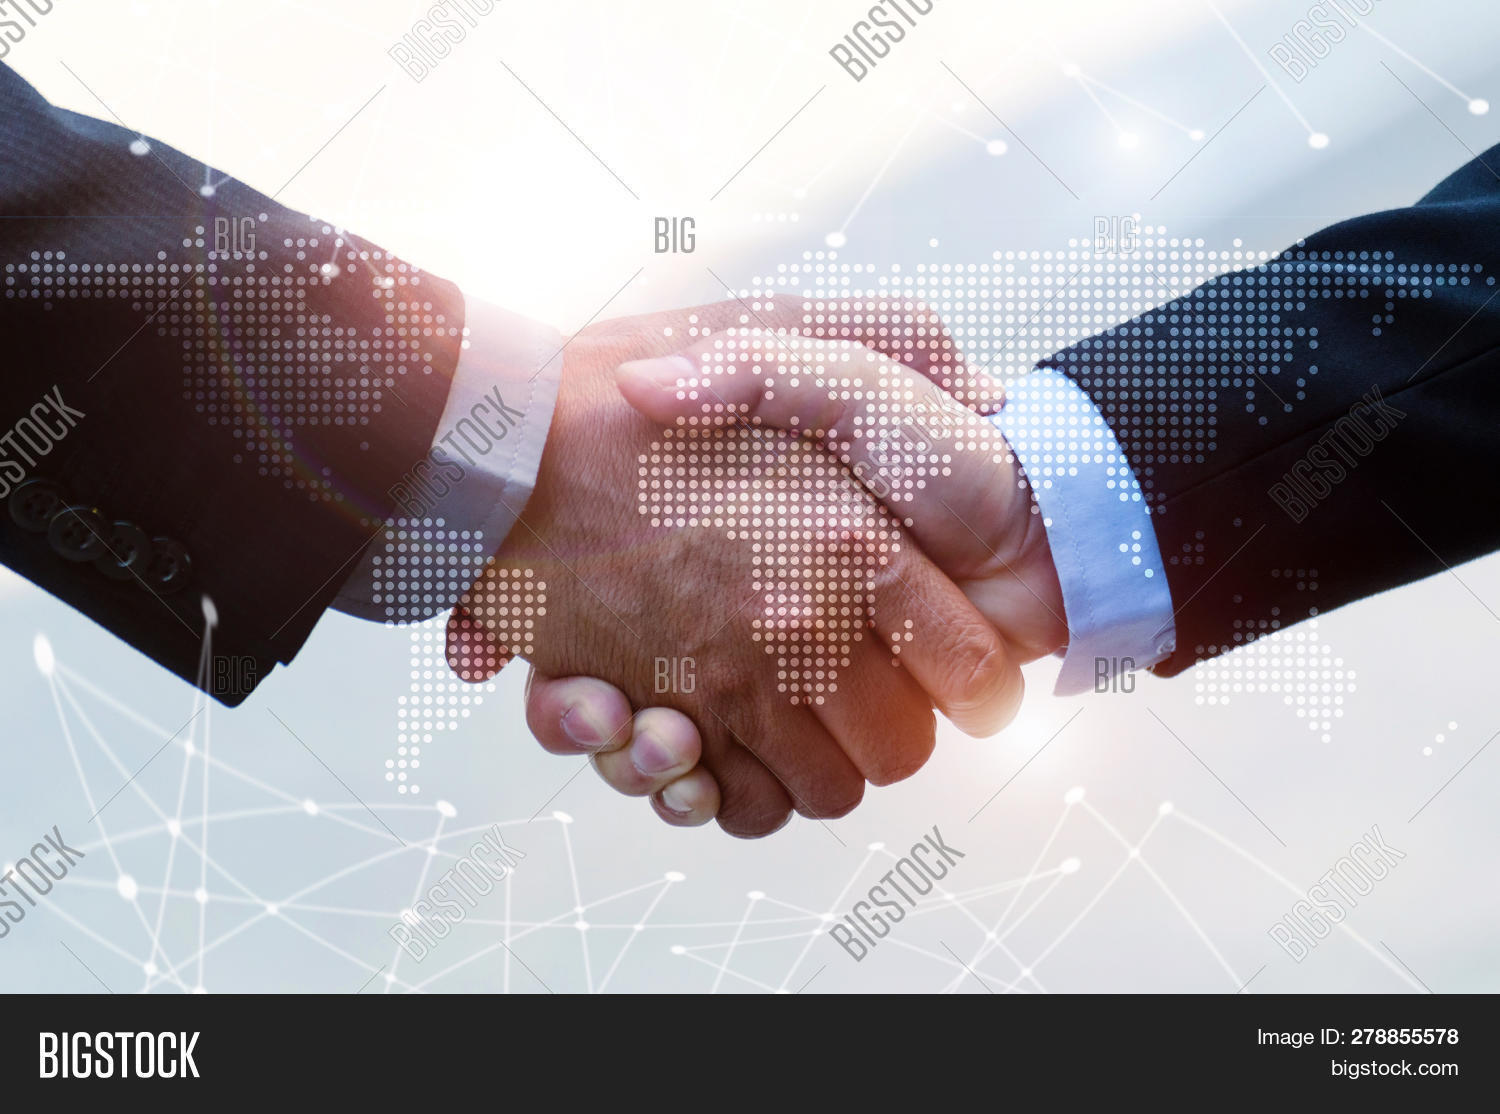 agree,agreement,business,businessman,city,company,connect,connection,contract,cooperation,corporate,data,deal,digital,double,exposure,financial,future,global,globe,greeting,hand,handshake,high,innovation,investment,investor,man,map,negotiation,network,networking,partner,partnership,people,power,shake,social,success,successful,team,teamwork,tech,technology,trade,trust,virtual,web,welcome,world